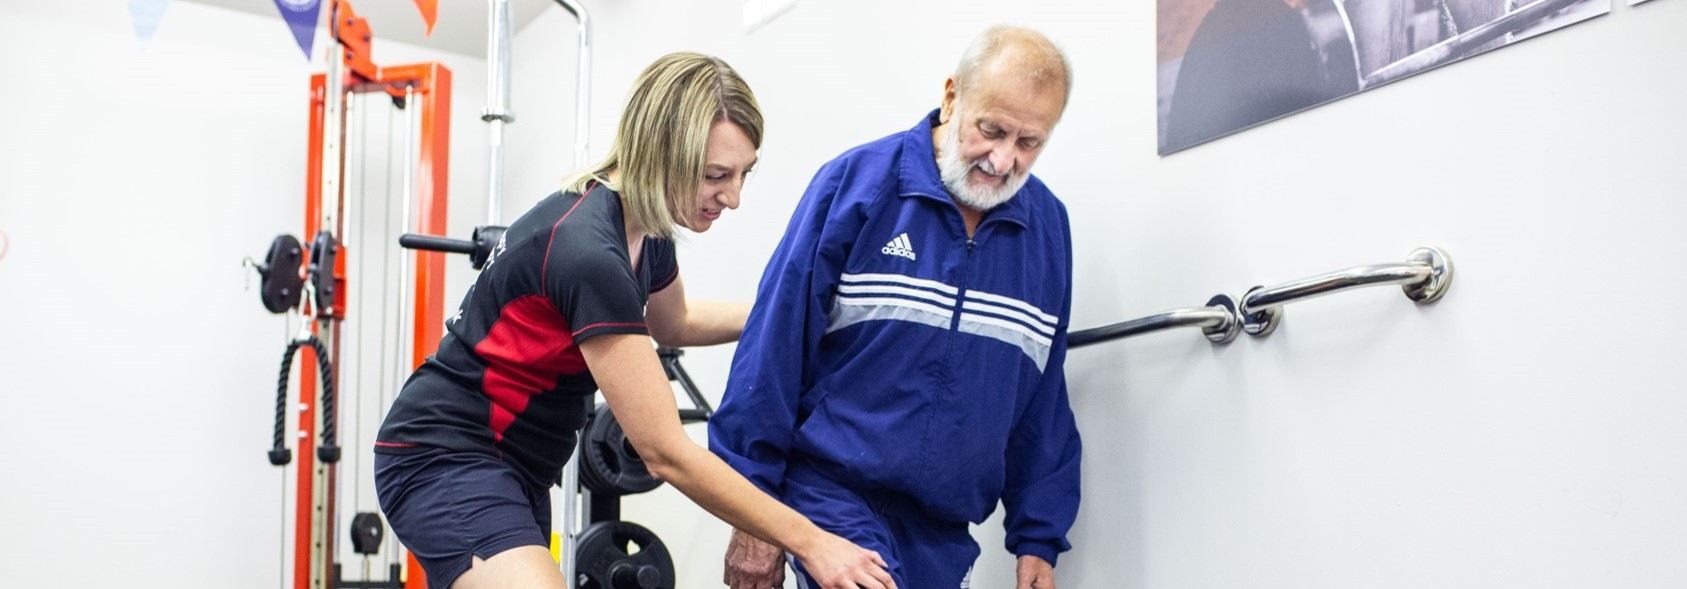 physiotherapist provides knee exercise for senior man